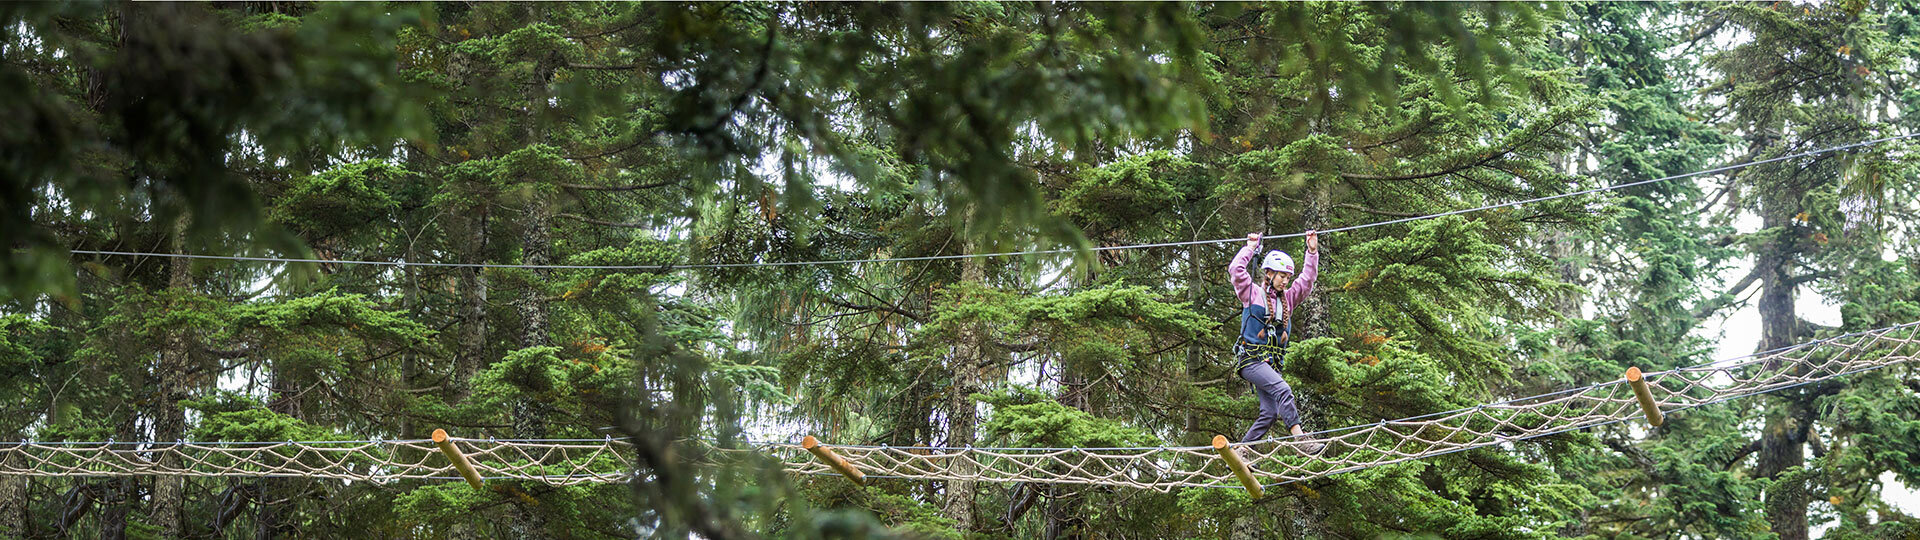 Discover Grouse Mountain from the tree tops this summer in Mountain Ropes Adventure